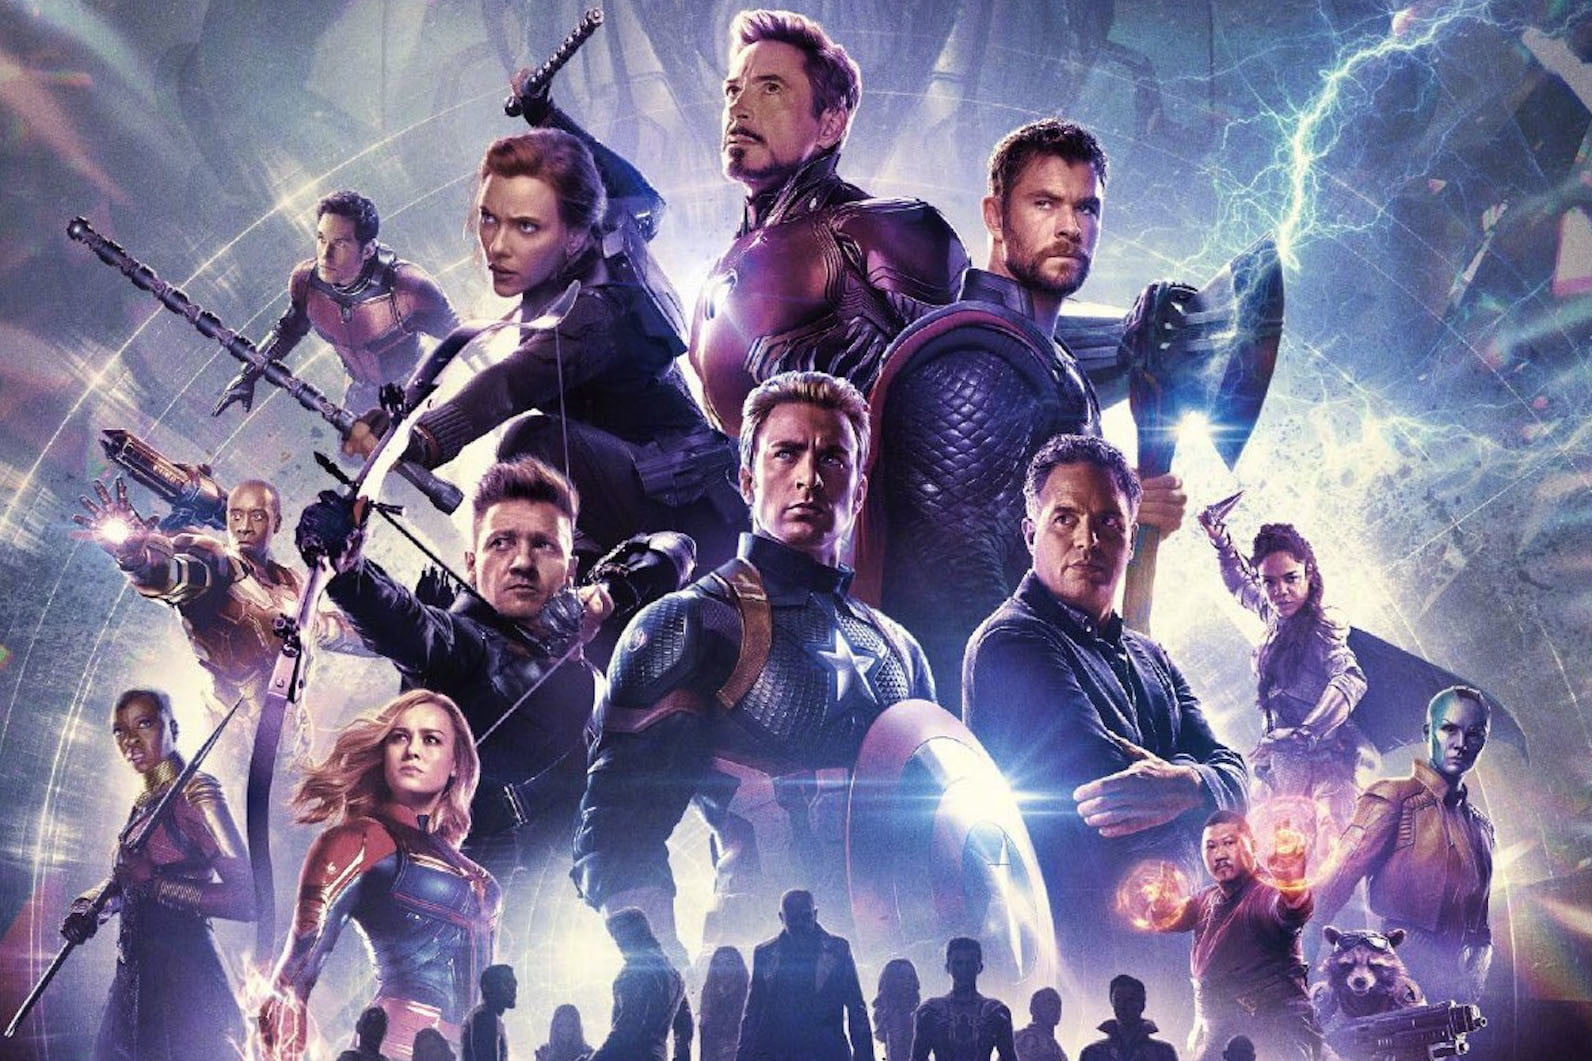 Avengers: Endgame: Everything we know about the Infinity War sequel